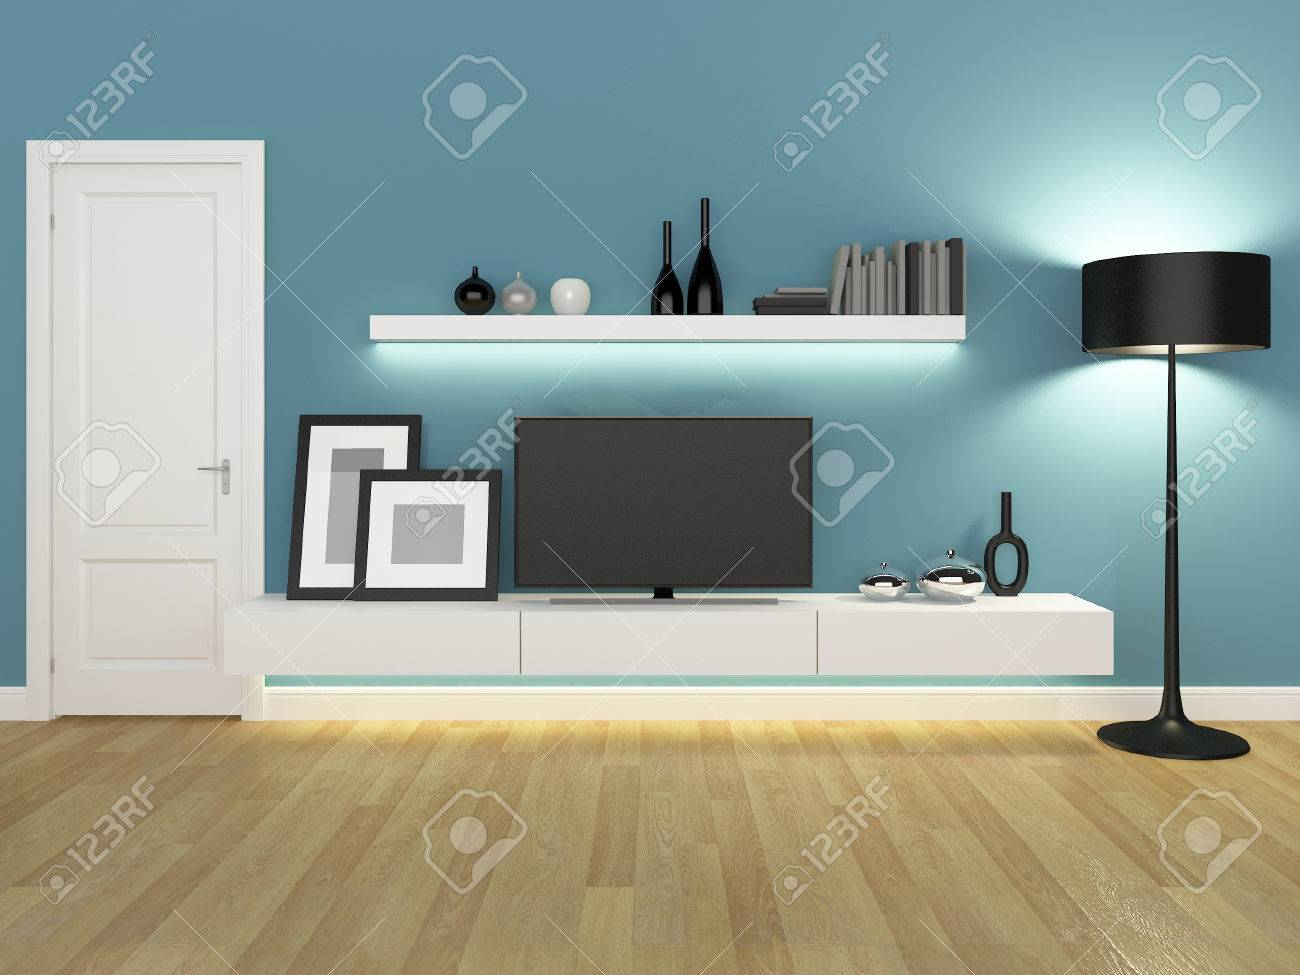 blue living room with tv stand and bookcase - rendering - 50113381